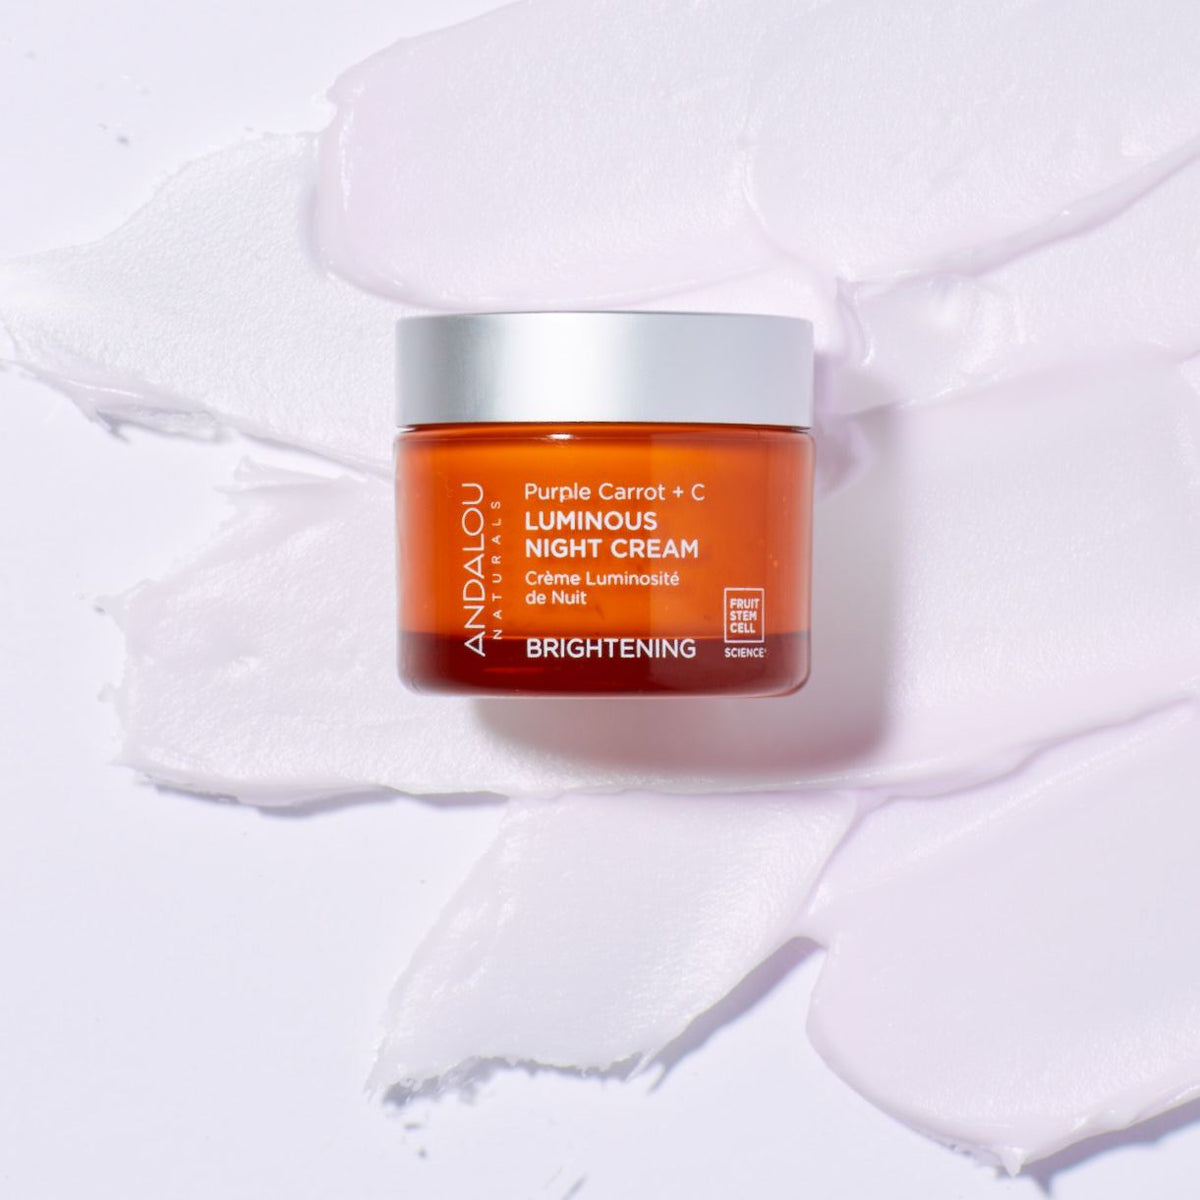 Brightening Purple Carrot + C Luminous Night Cream - Andalou Naturals US